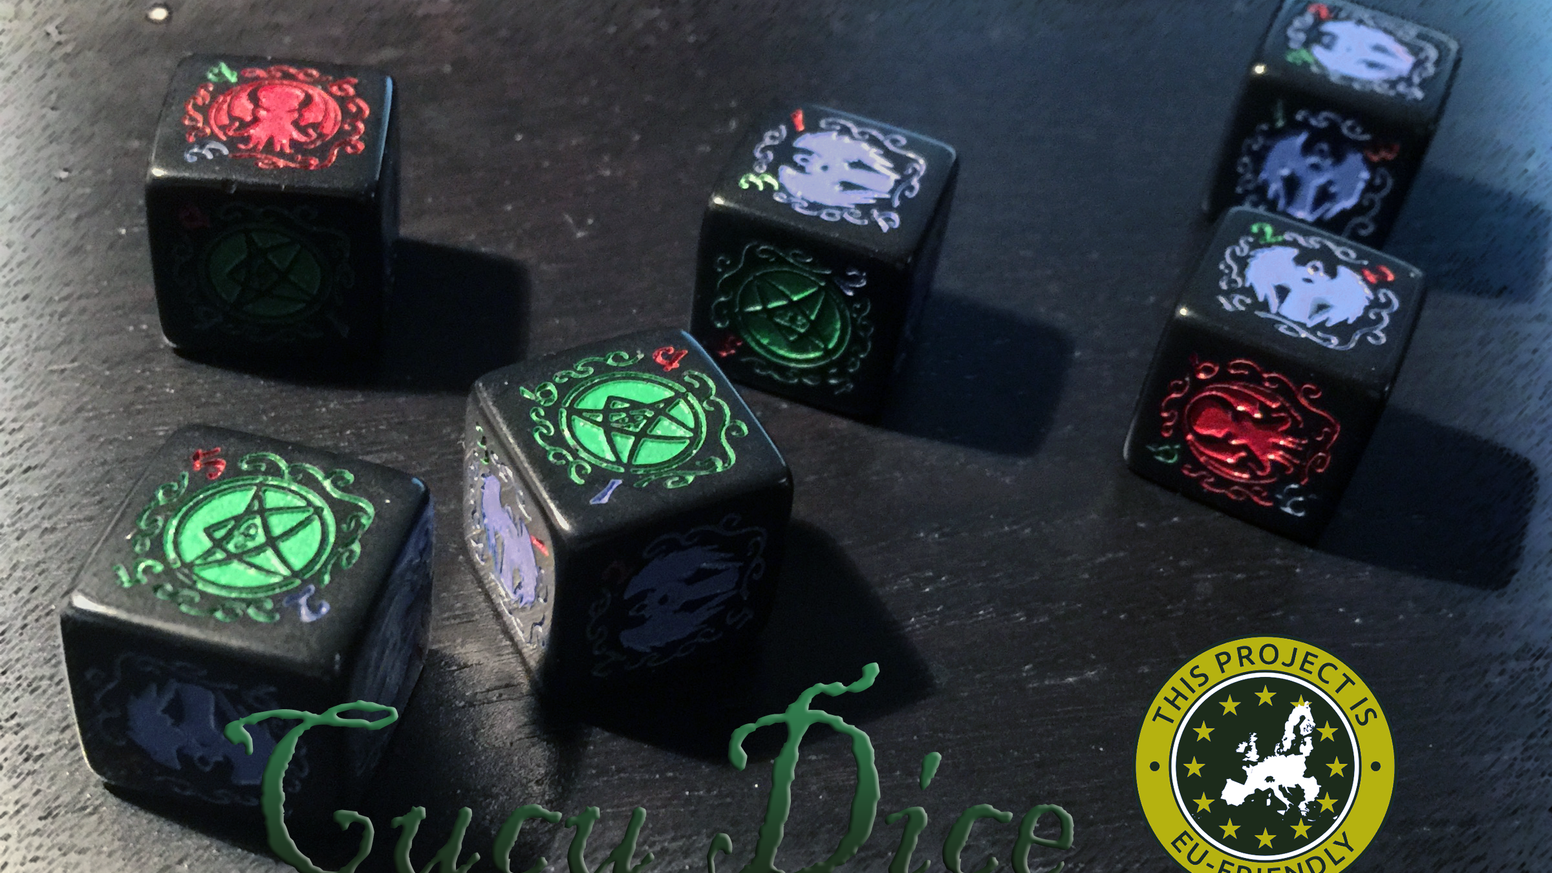 These are self designed custom dice for binary resolutions such as in Arkham or Eldritch based Lovecraftian horror games.